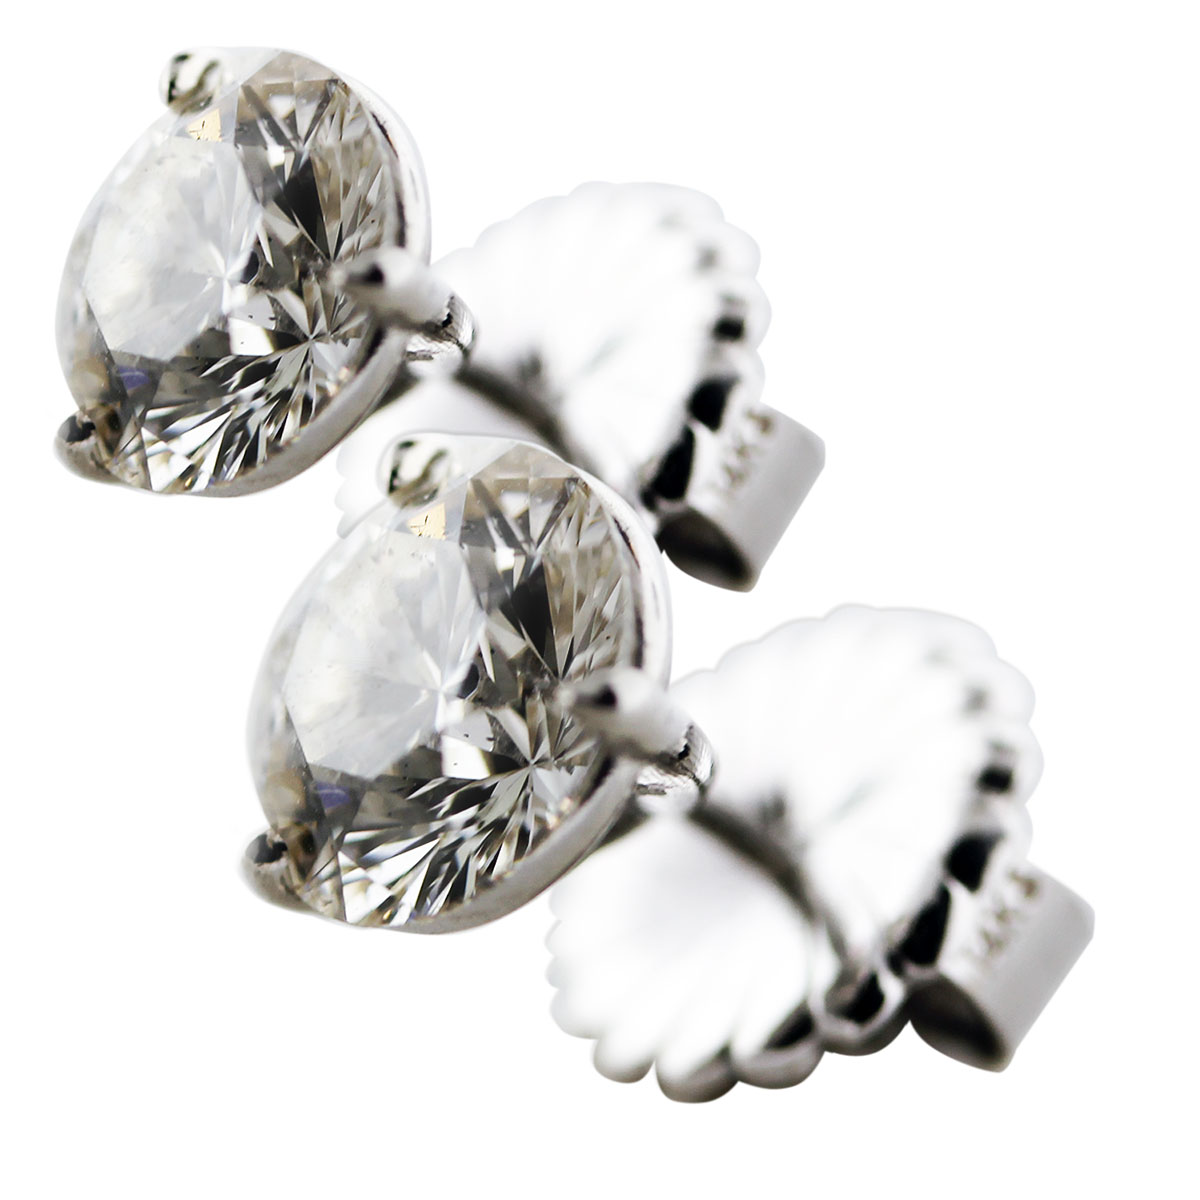 Diamond studs with post and friction backs